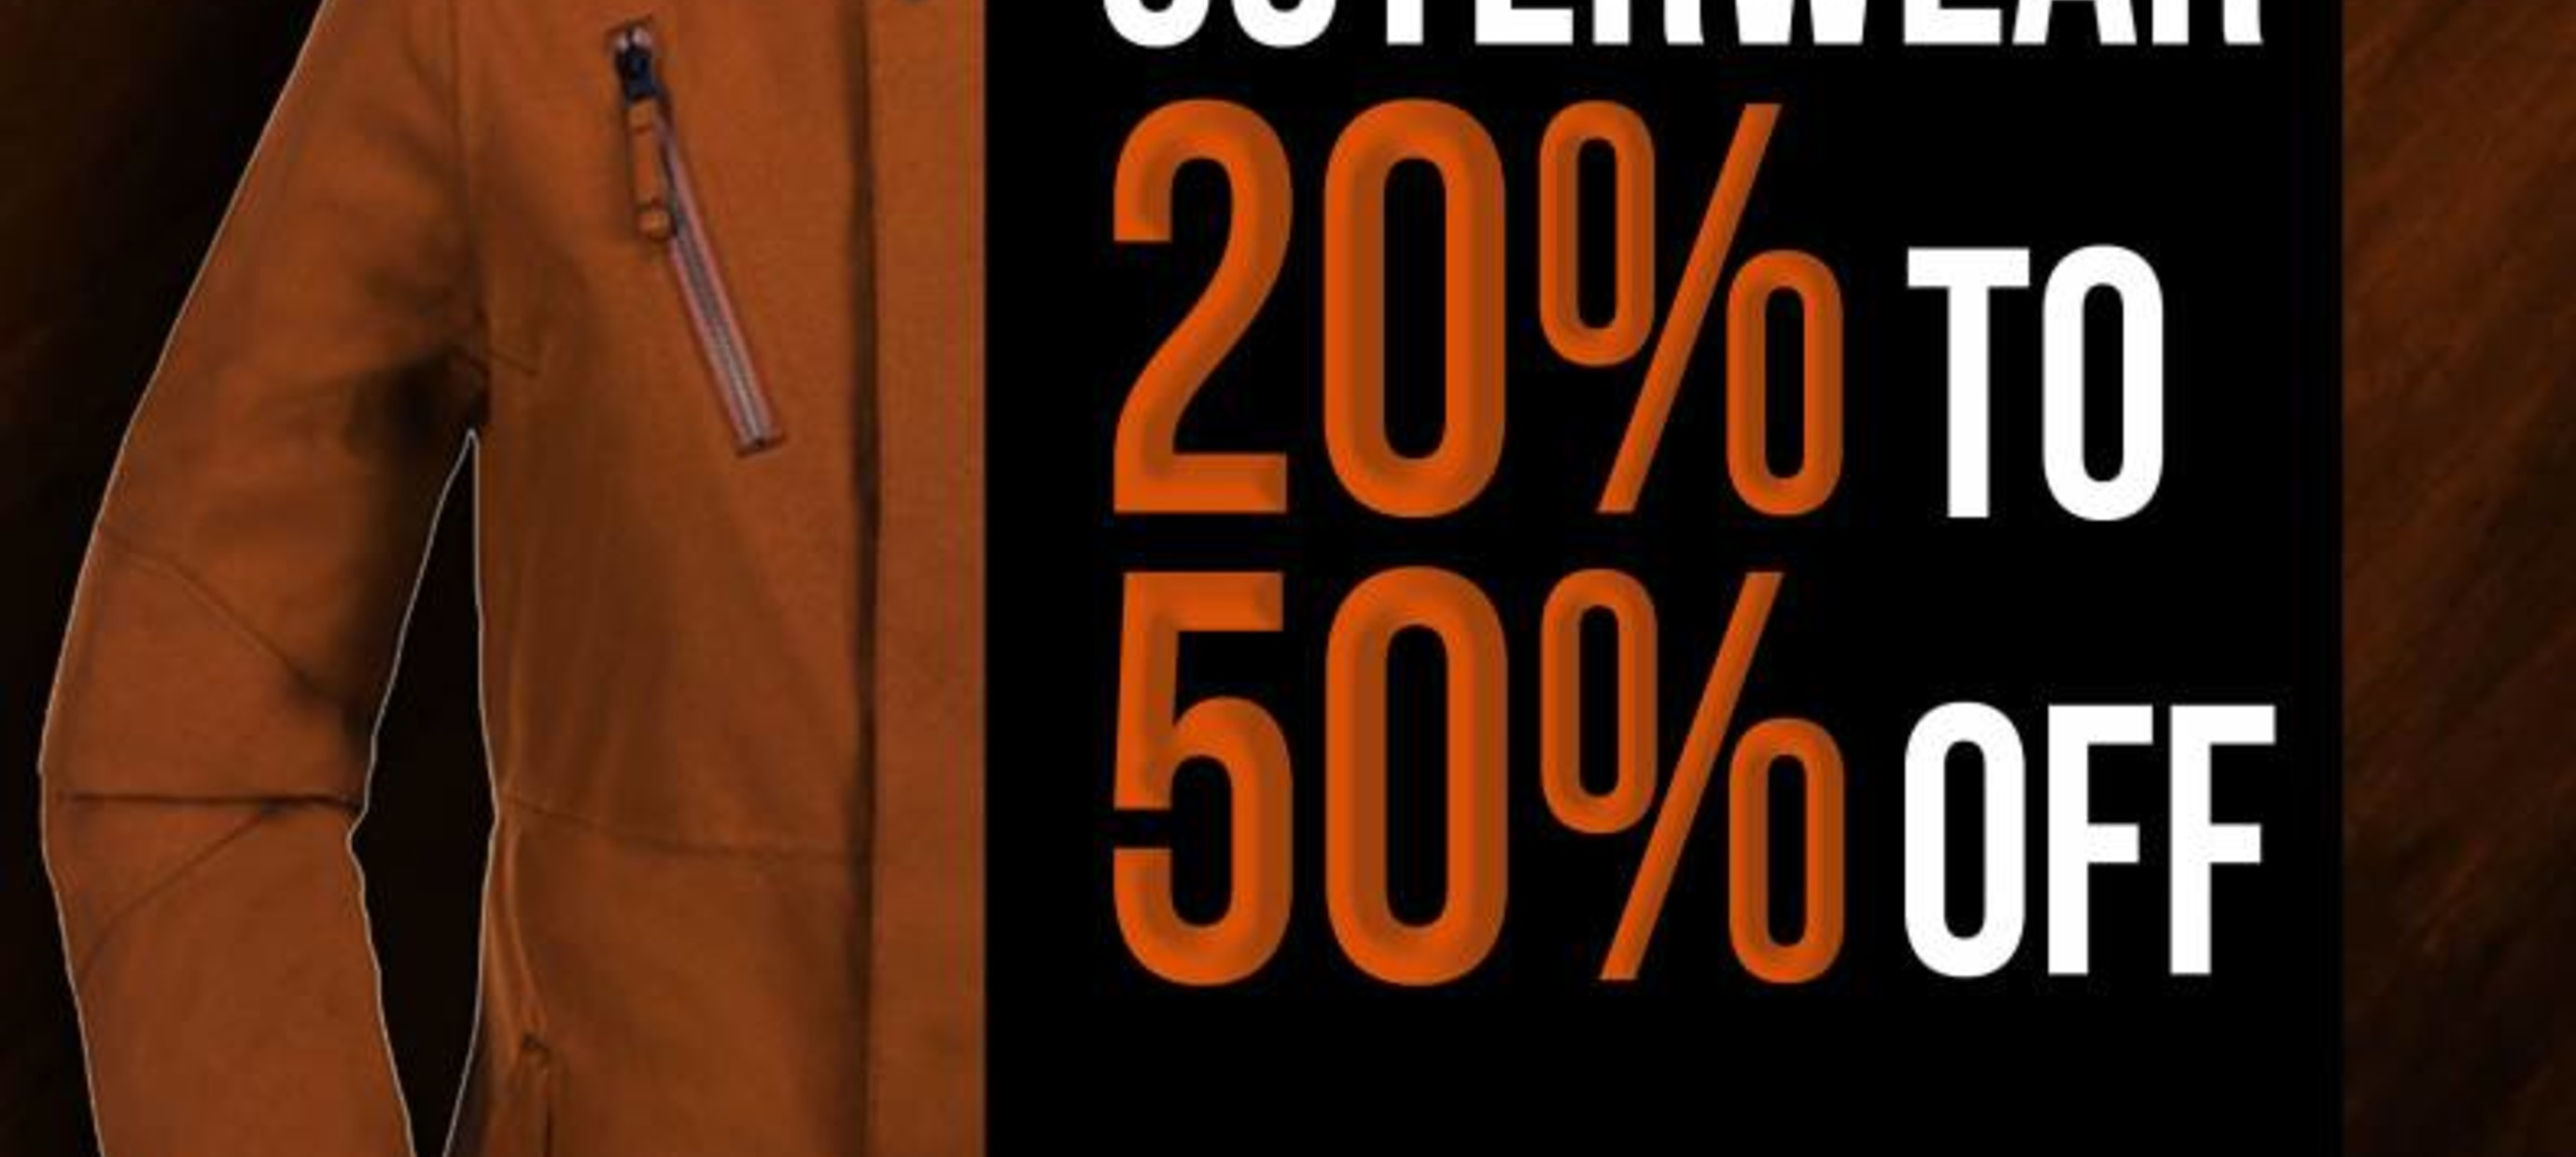 20-50% OFF OUTERWEAR